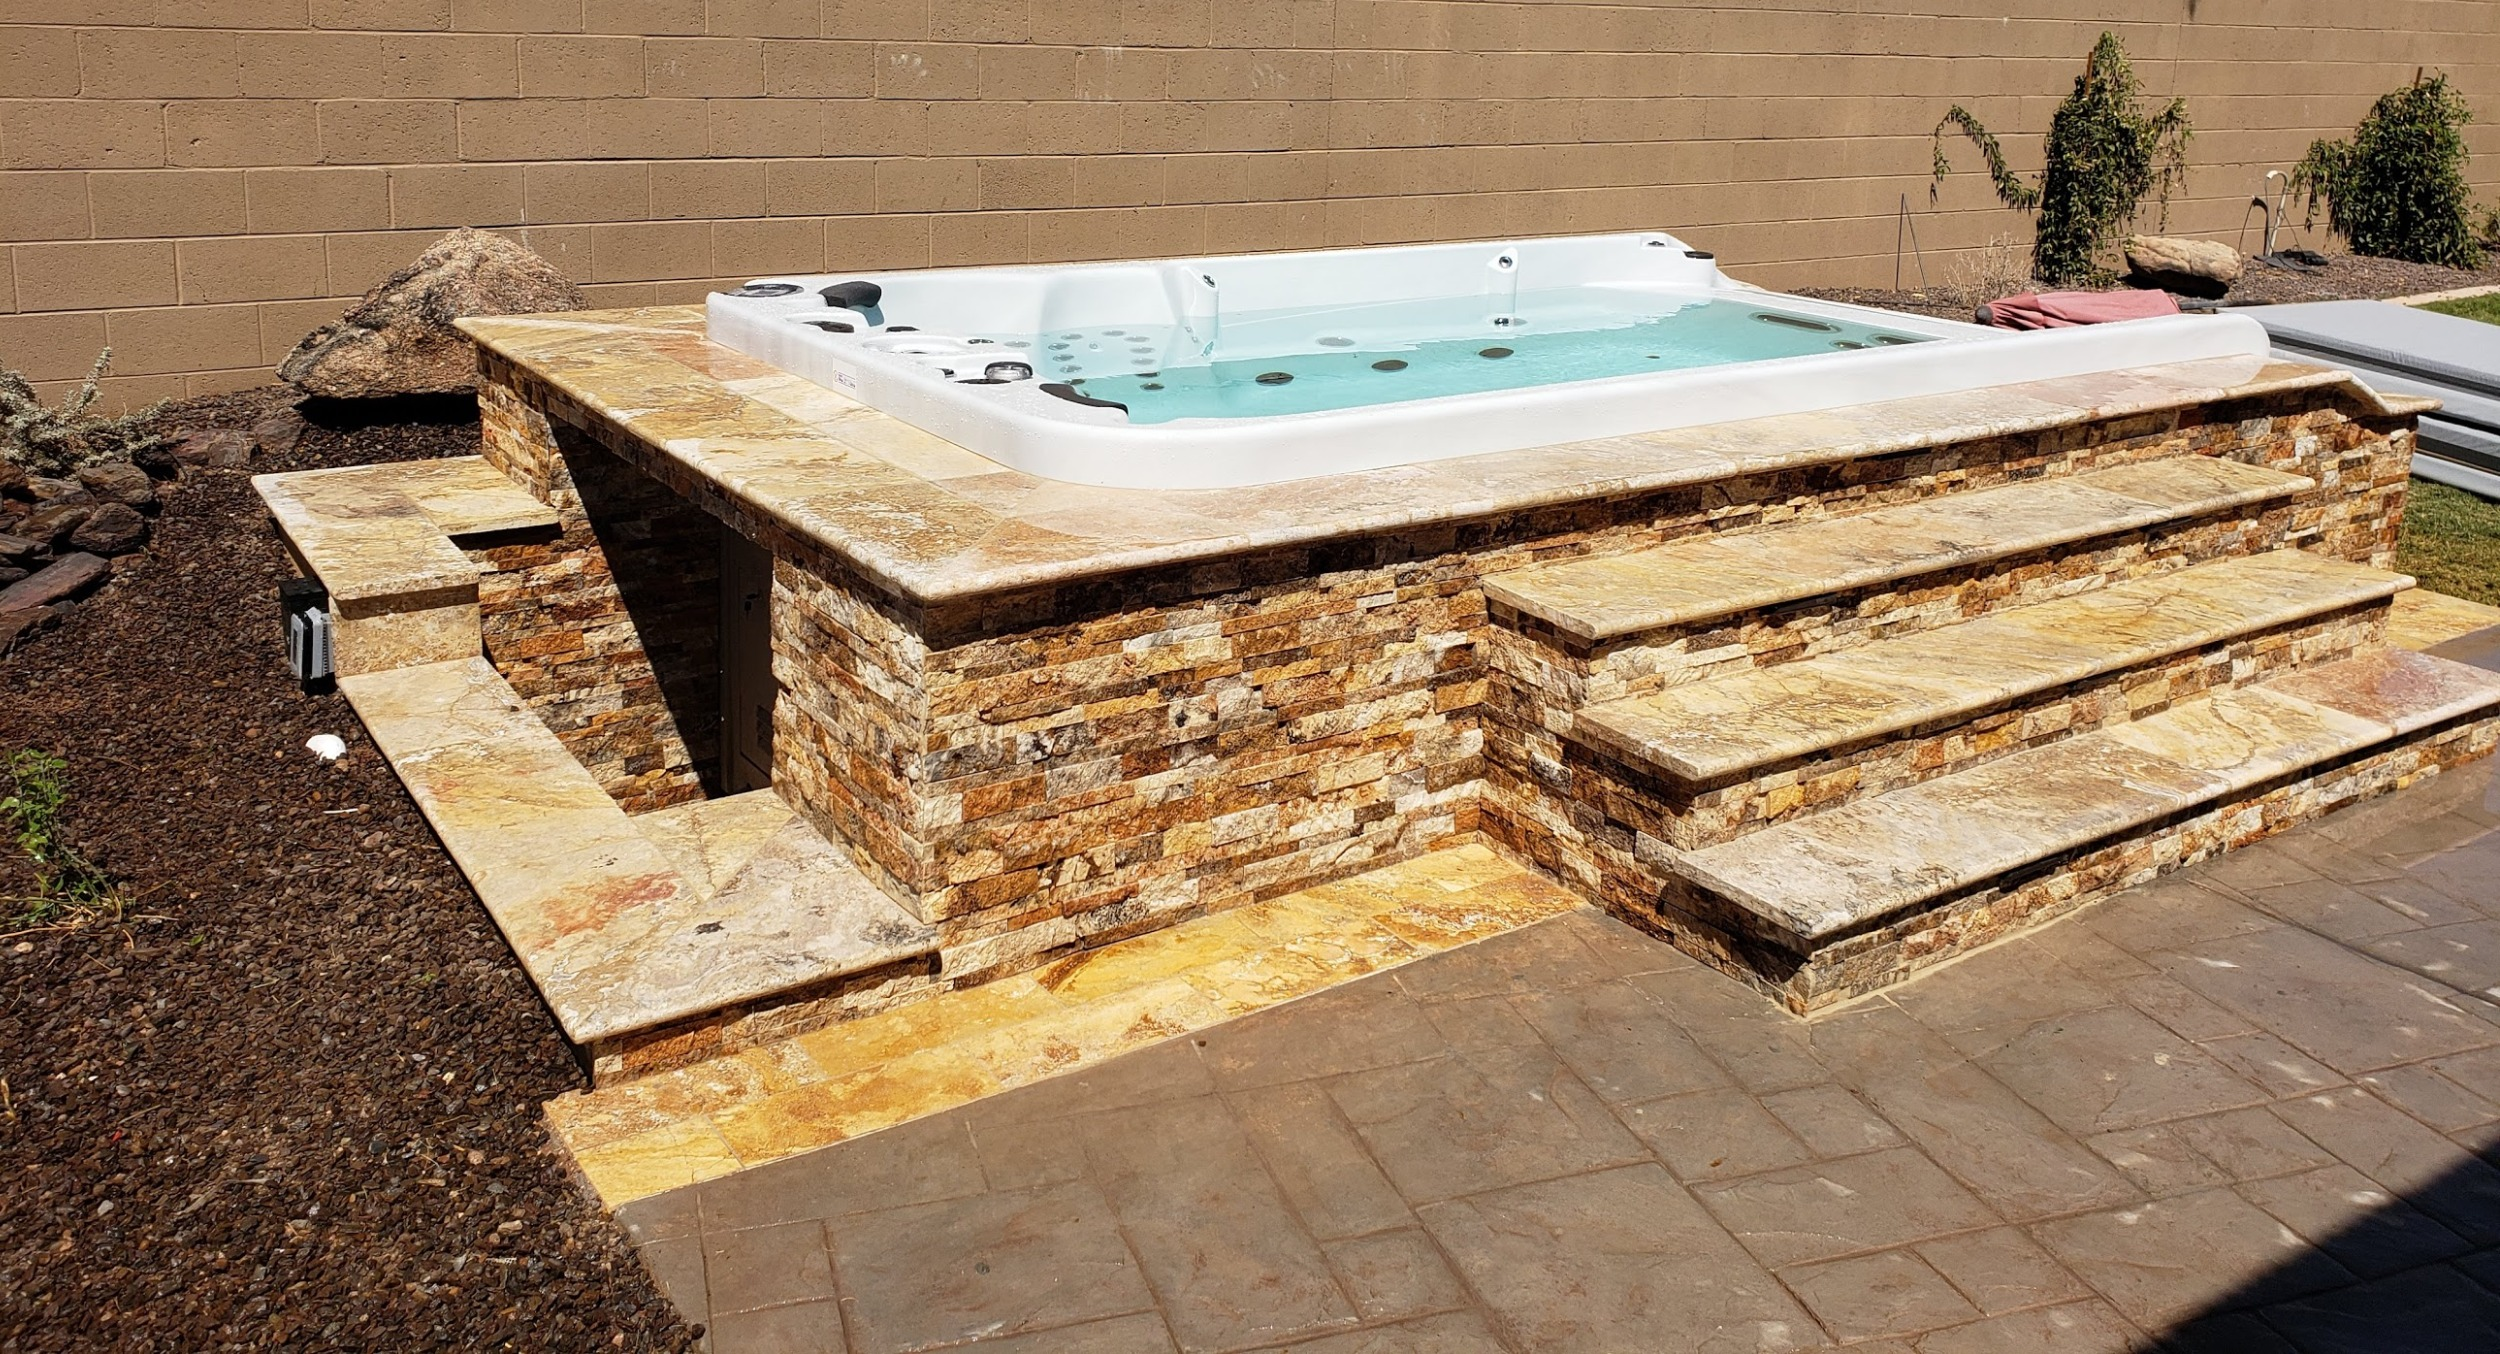 Natural stone is the way to go! This Anthem, AZ travertine spa surround is beautiful, and just the solution to hiding a 14-foot swim spa in plain site.